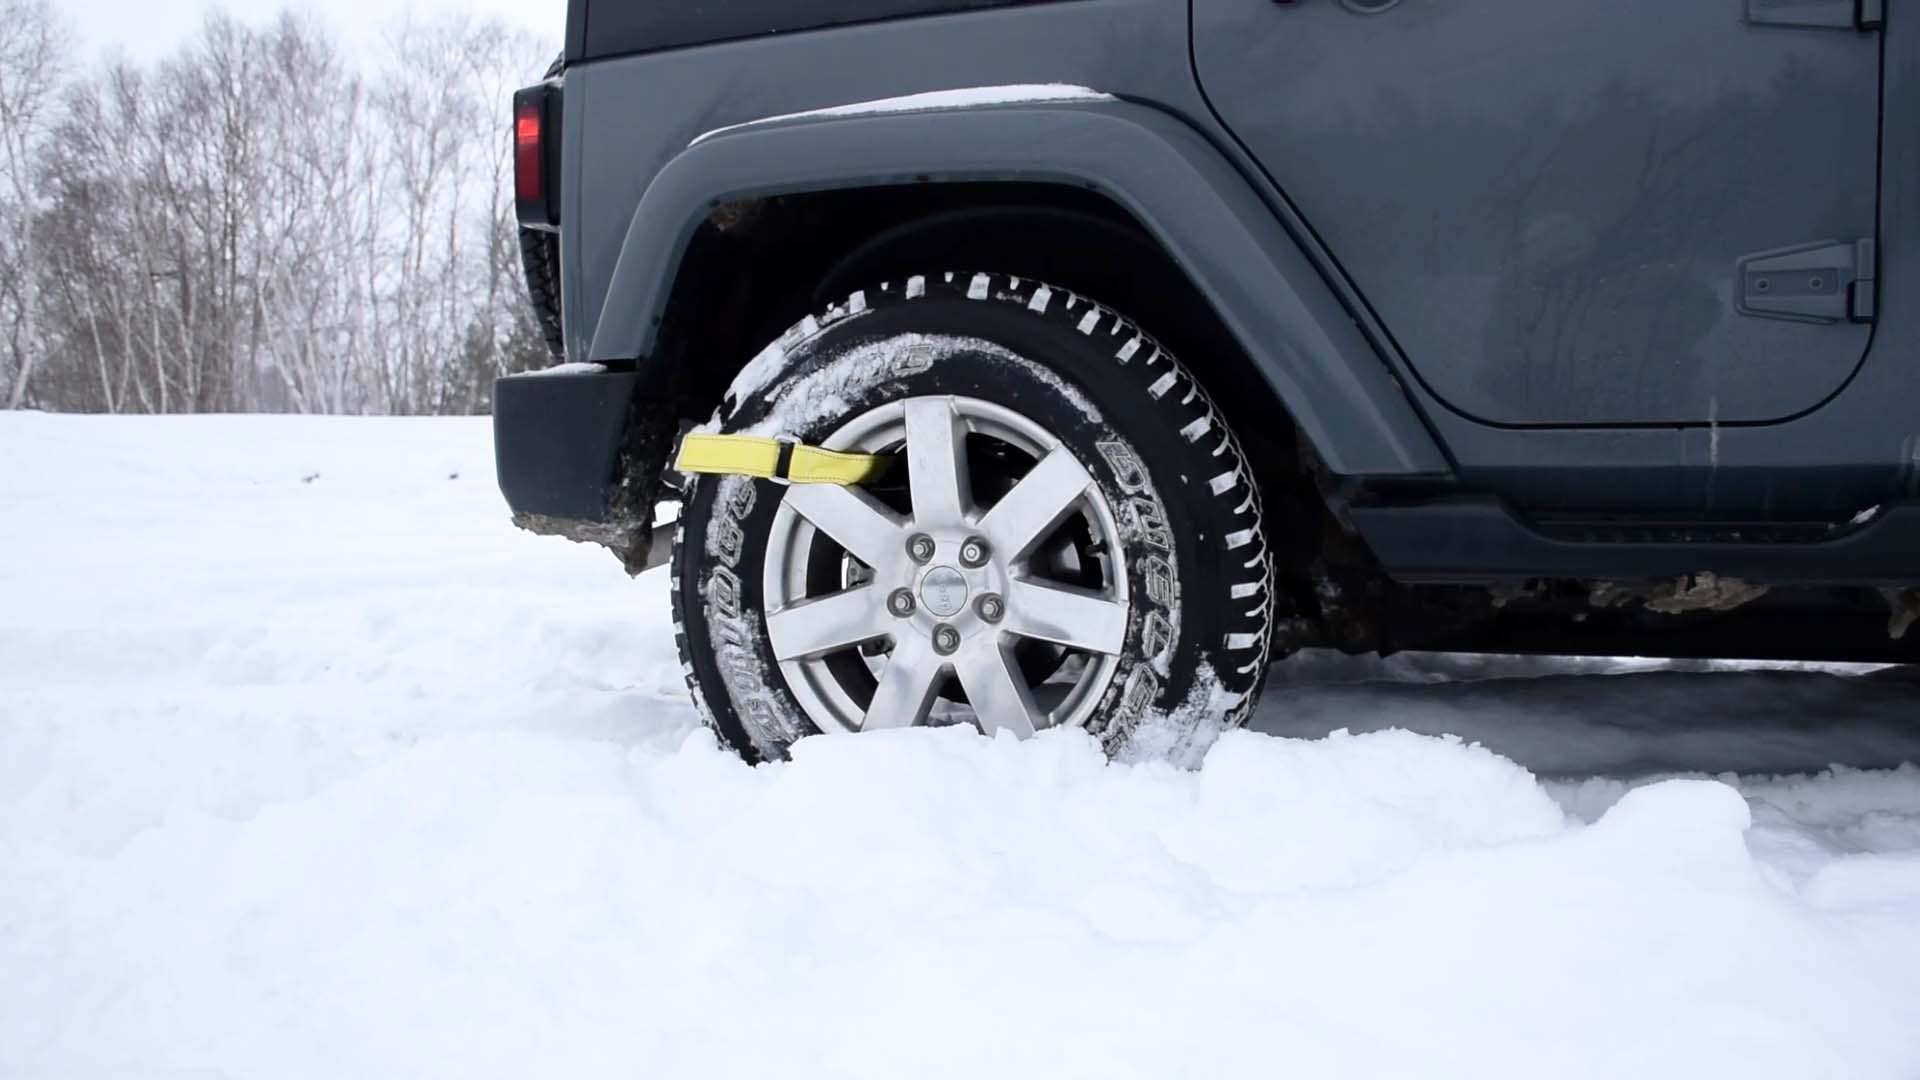 Trac Grabber - Get unstuck from snow, sand and mud